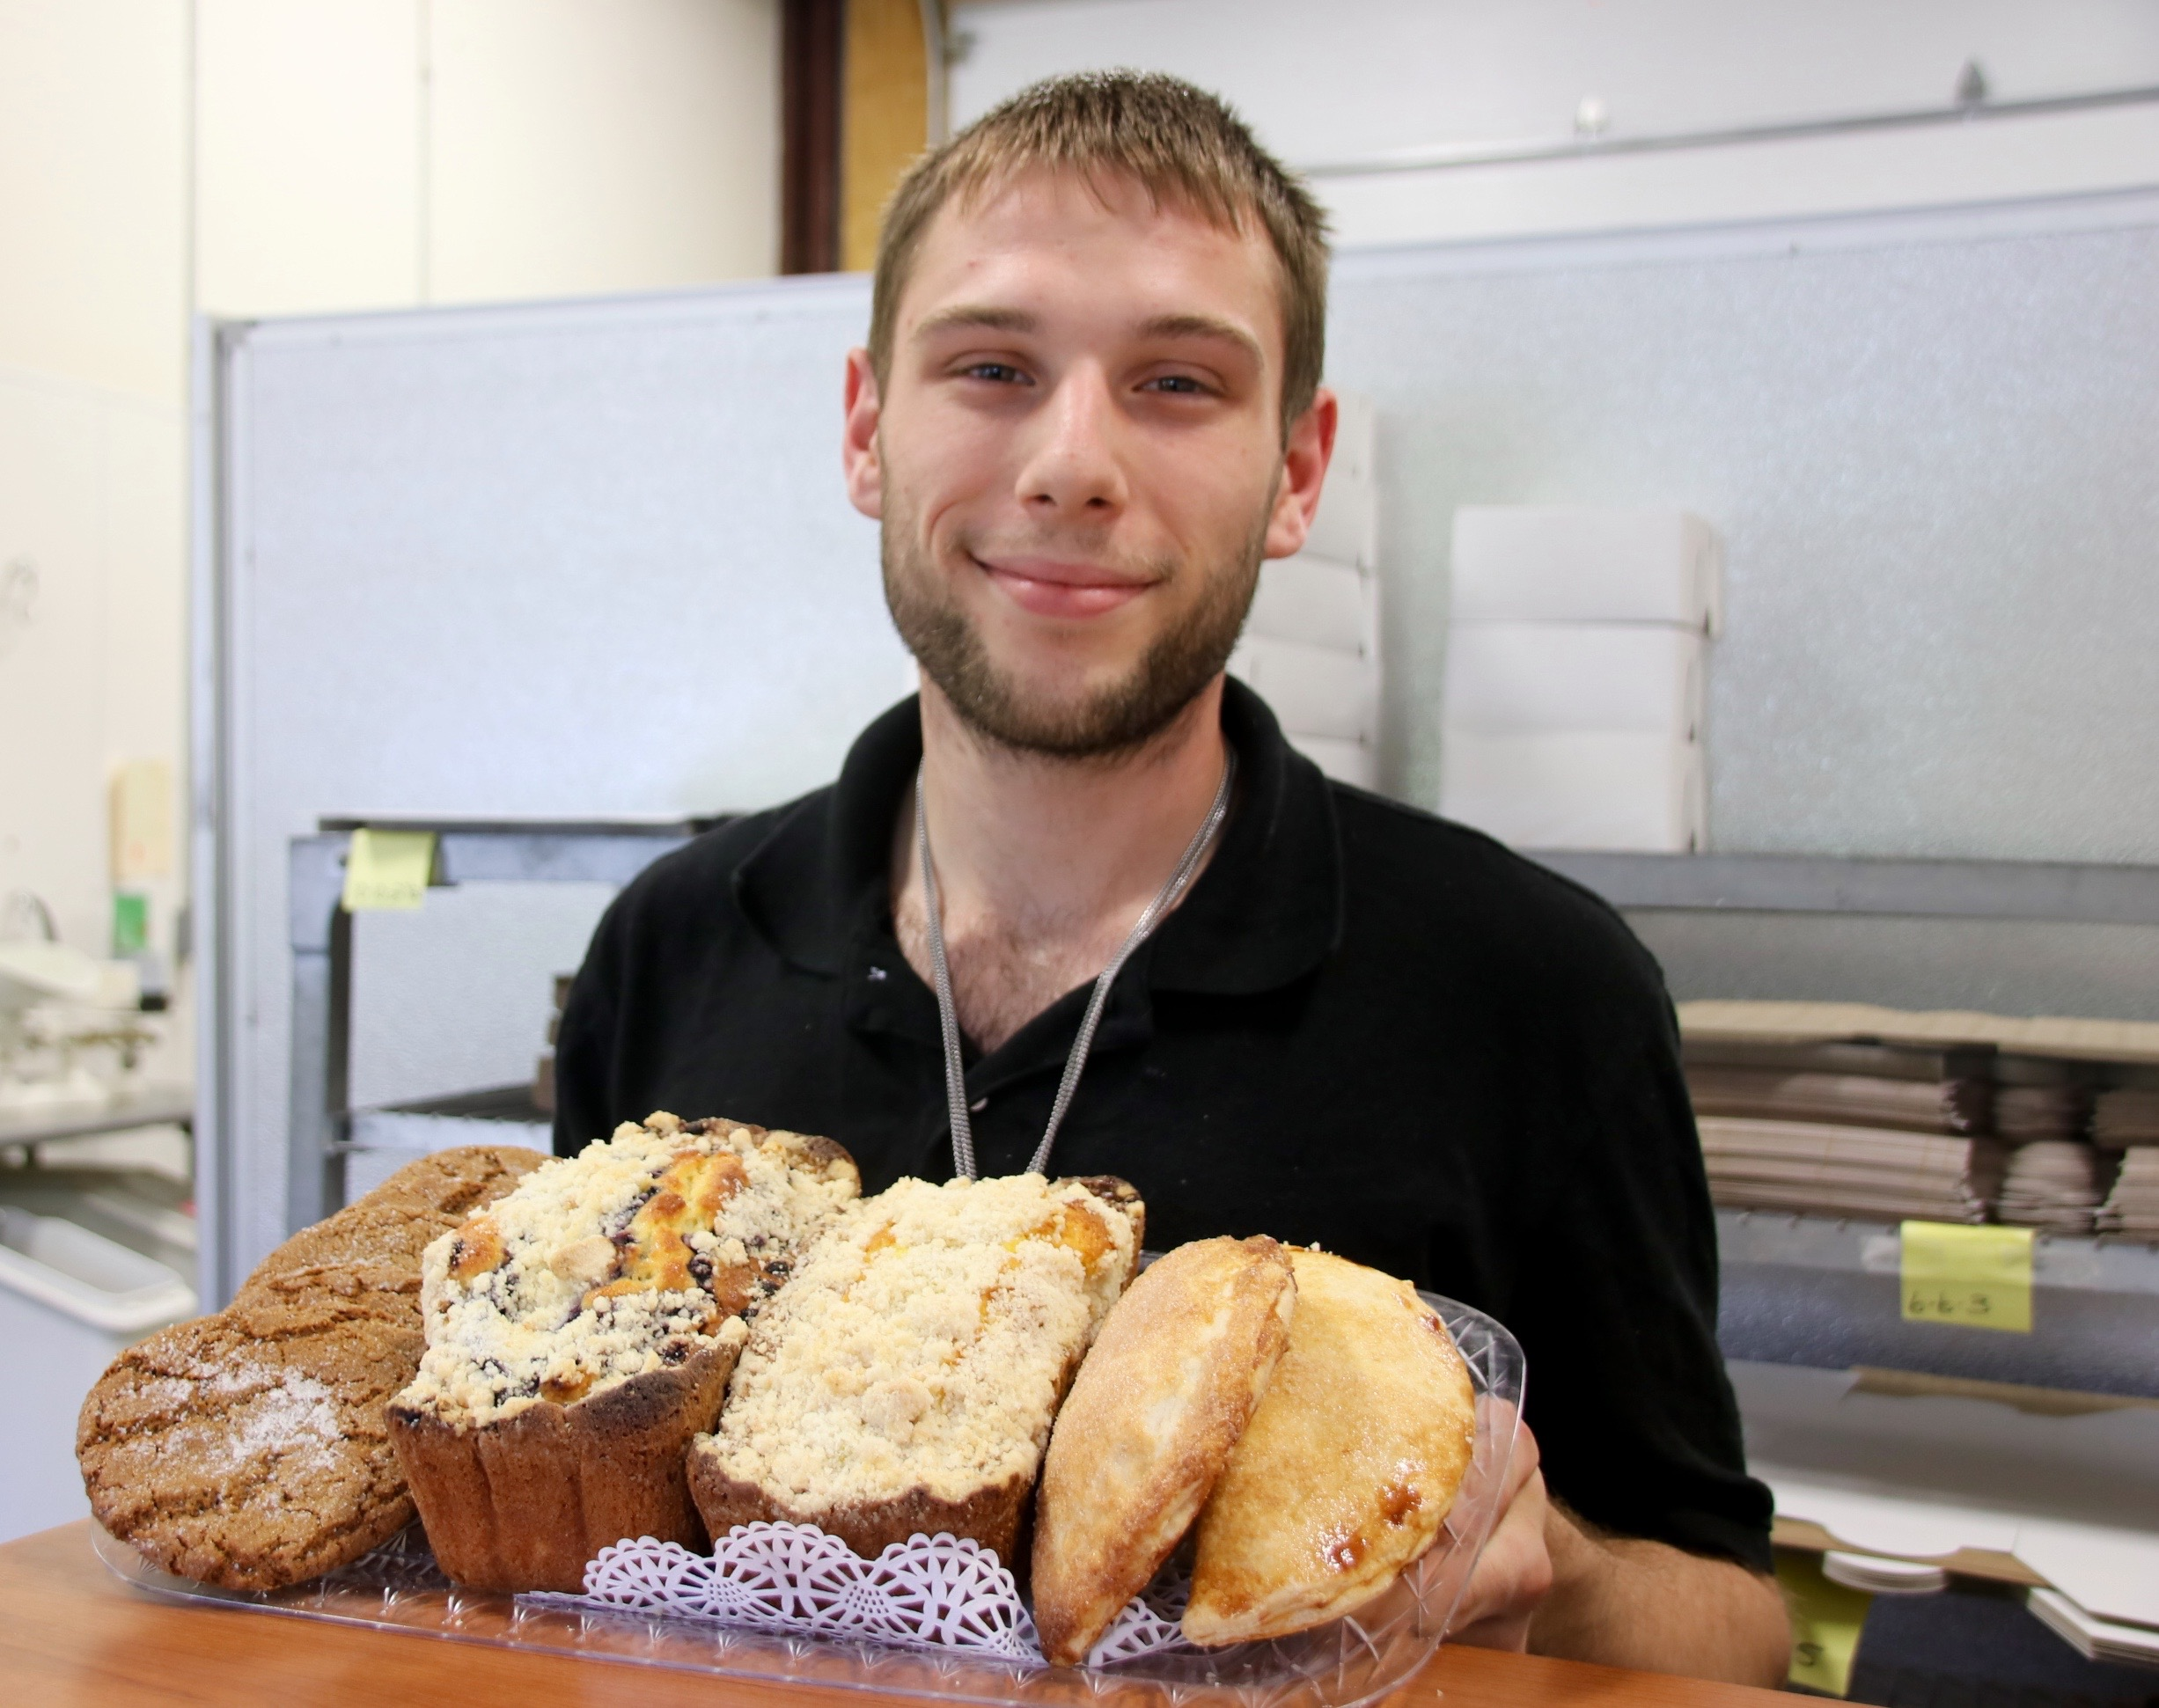 Ben Dube, who purchased New England Bakery in south Sanford in December,  holds a tray with a small sampling of the baked goods he and another baker turn out daily for an array of commercial accounts. Recently, New England Bakery began delivering baked goods — particularly donuts — to residents in Sanford and Springvale on the weekends. TAMMY WELLS/Journal Tribune